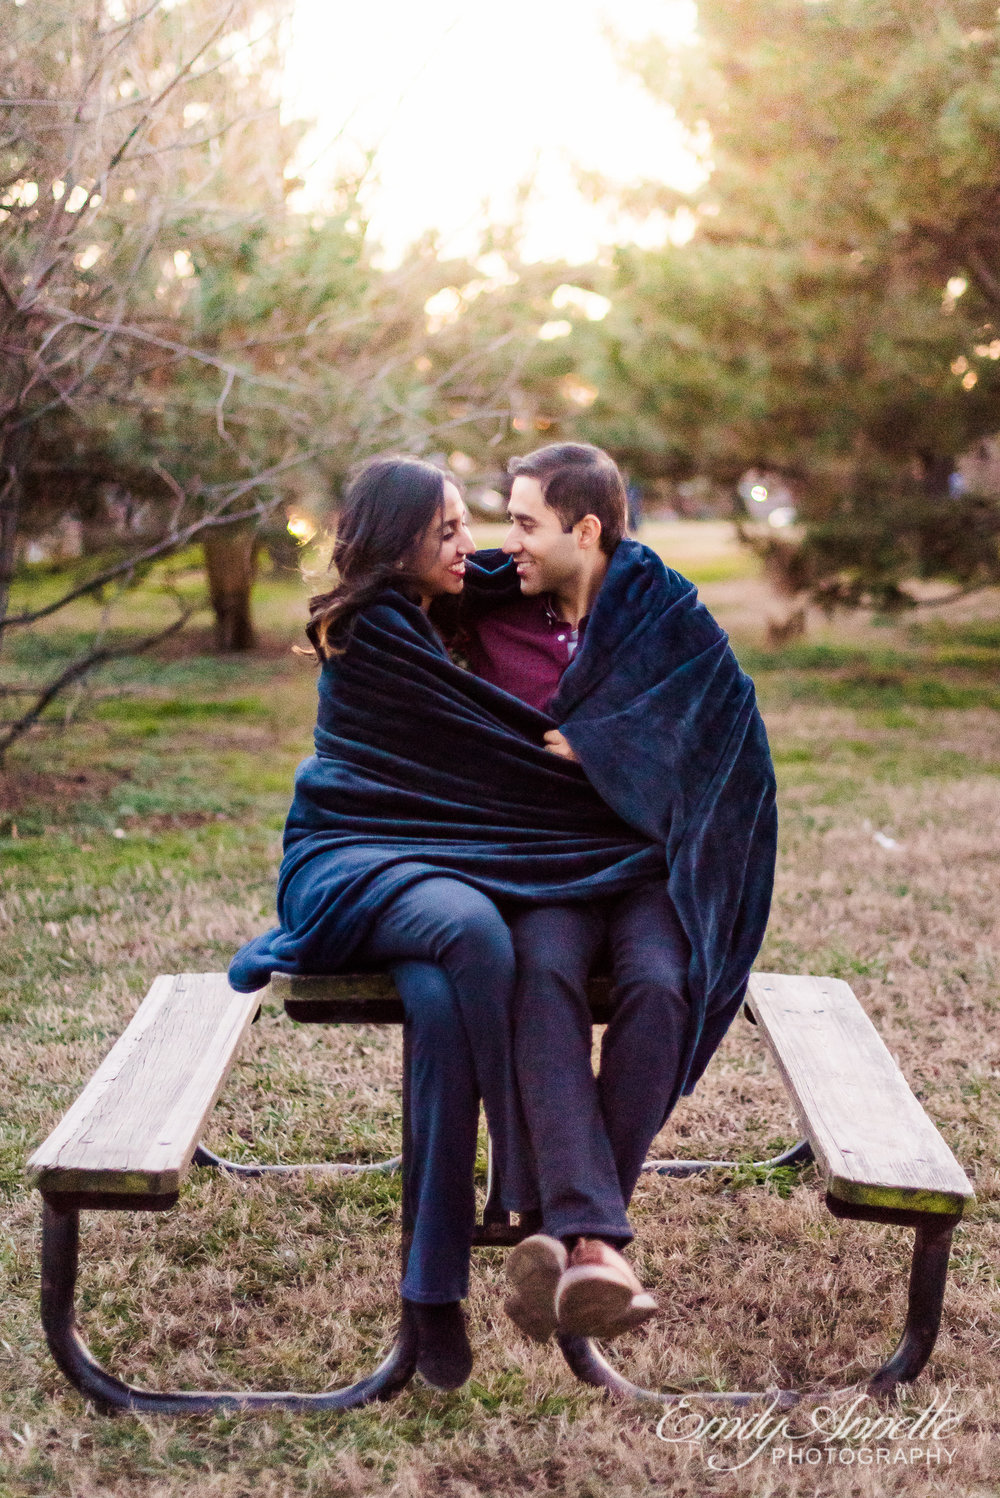 An engaged couple smiles at each other while wrapped in a blanket sitting on a picnic table at Gravelly Point Park in Arlington Virginia for an engagement session